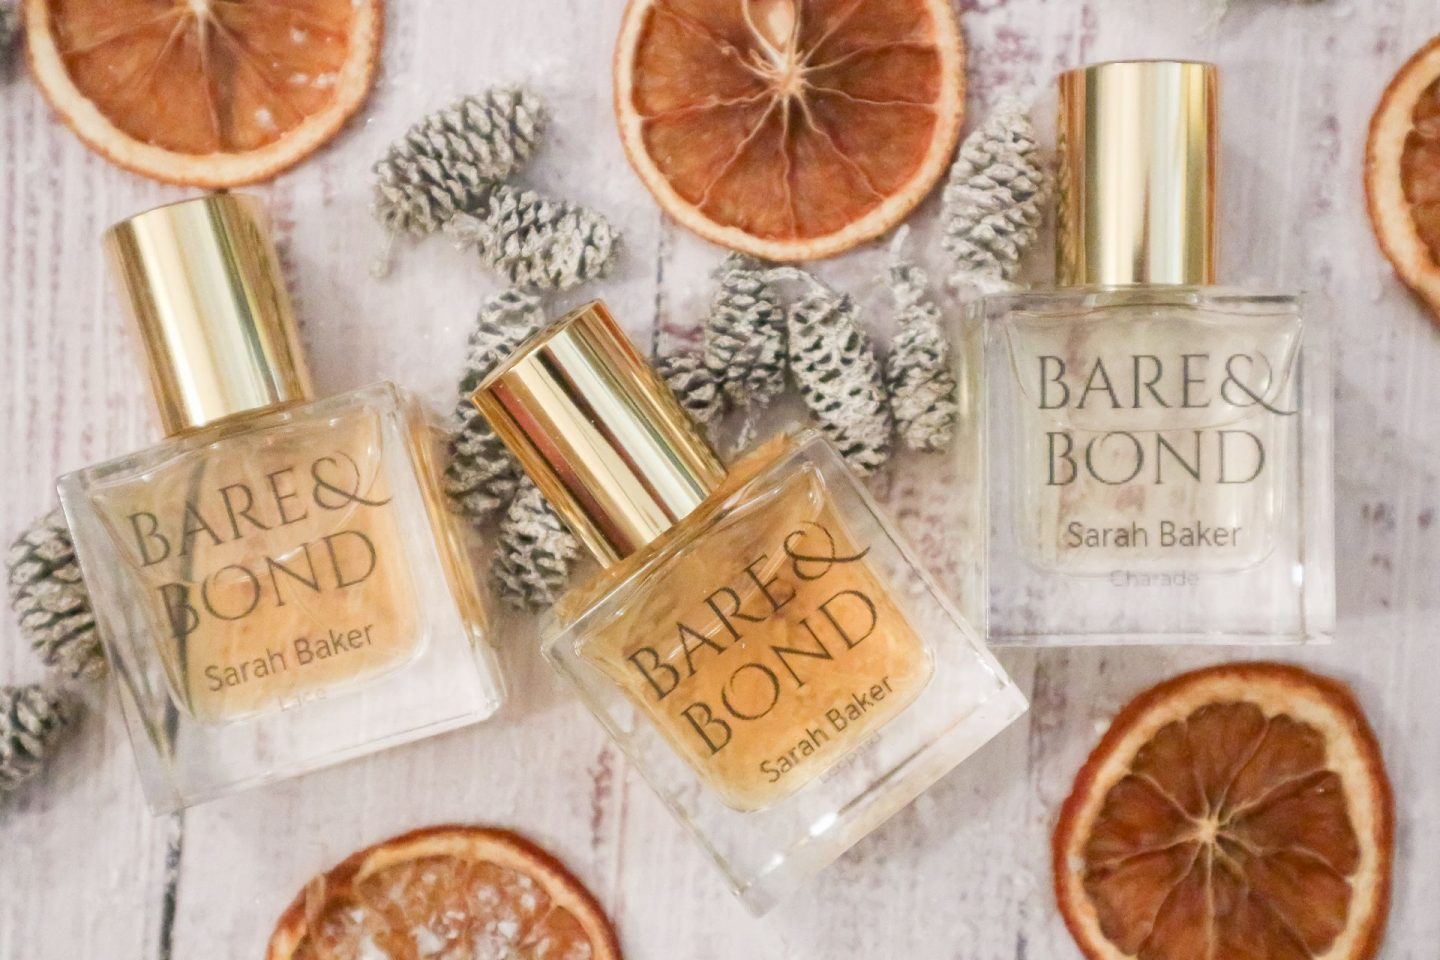 Bare & Bond Fragrance Subscription Box